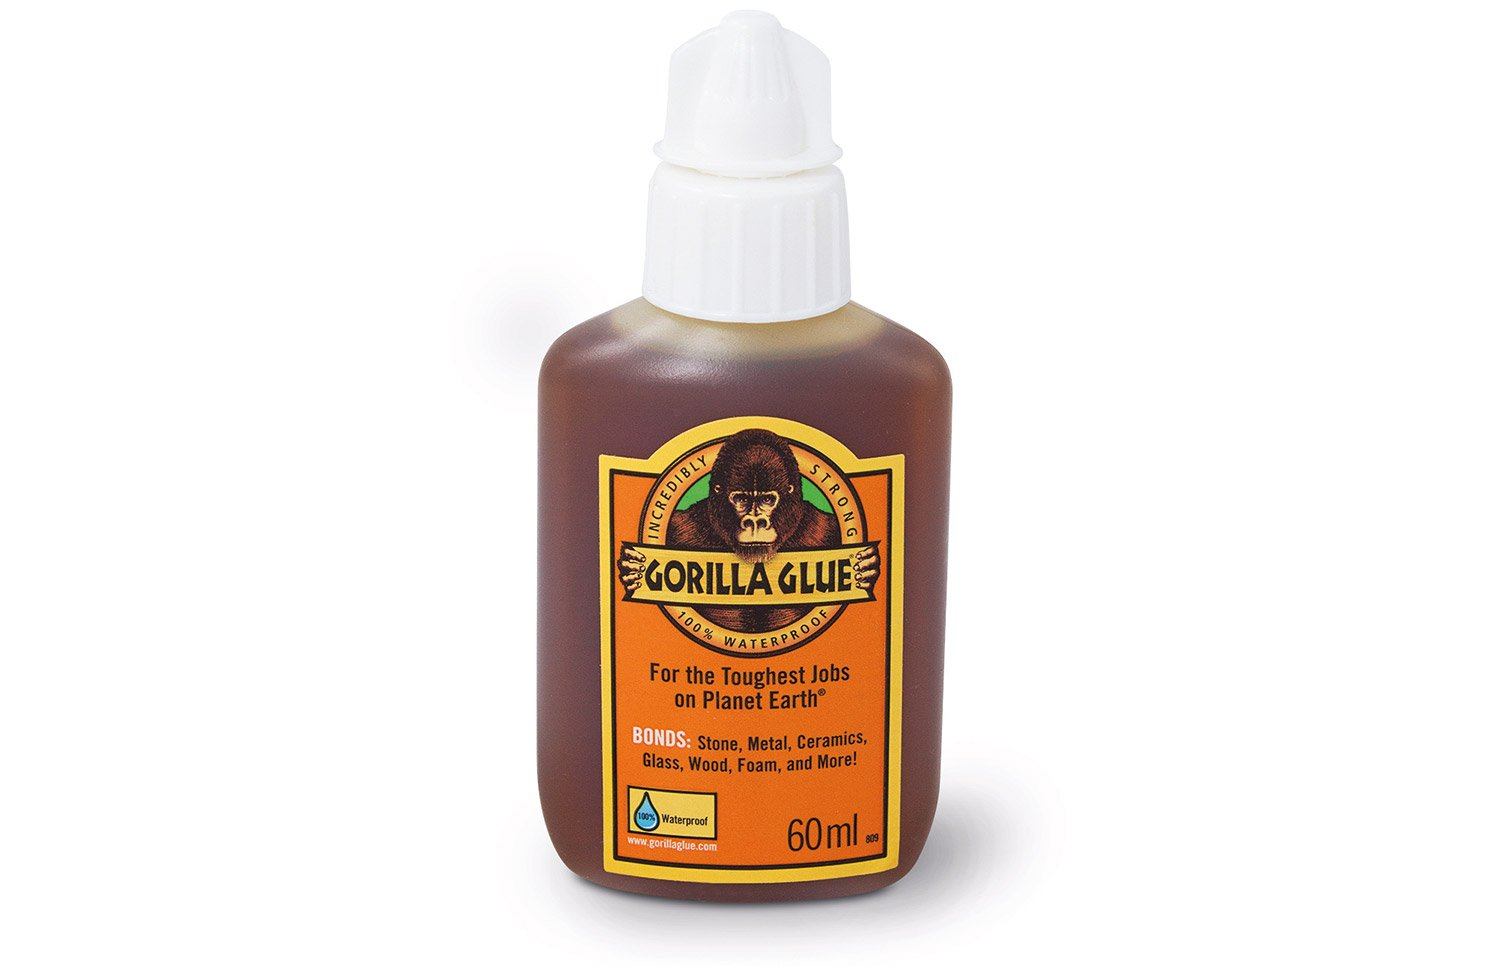 Gorilla Glue 60ml Diy Tools Learn More At Electricfenceonlinecouk